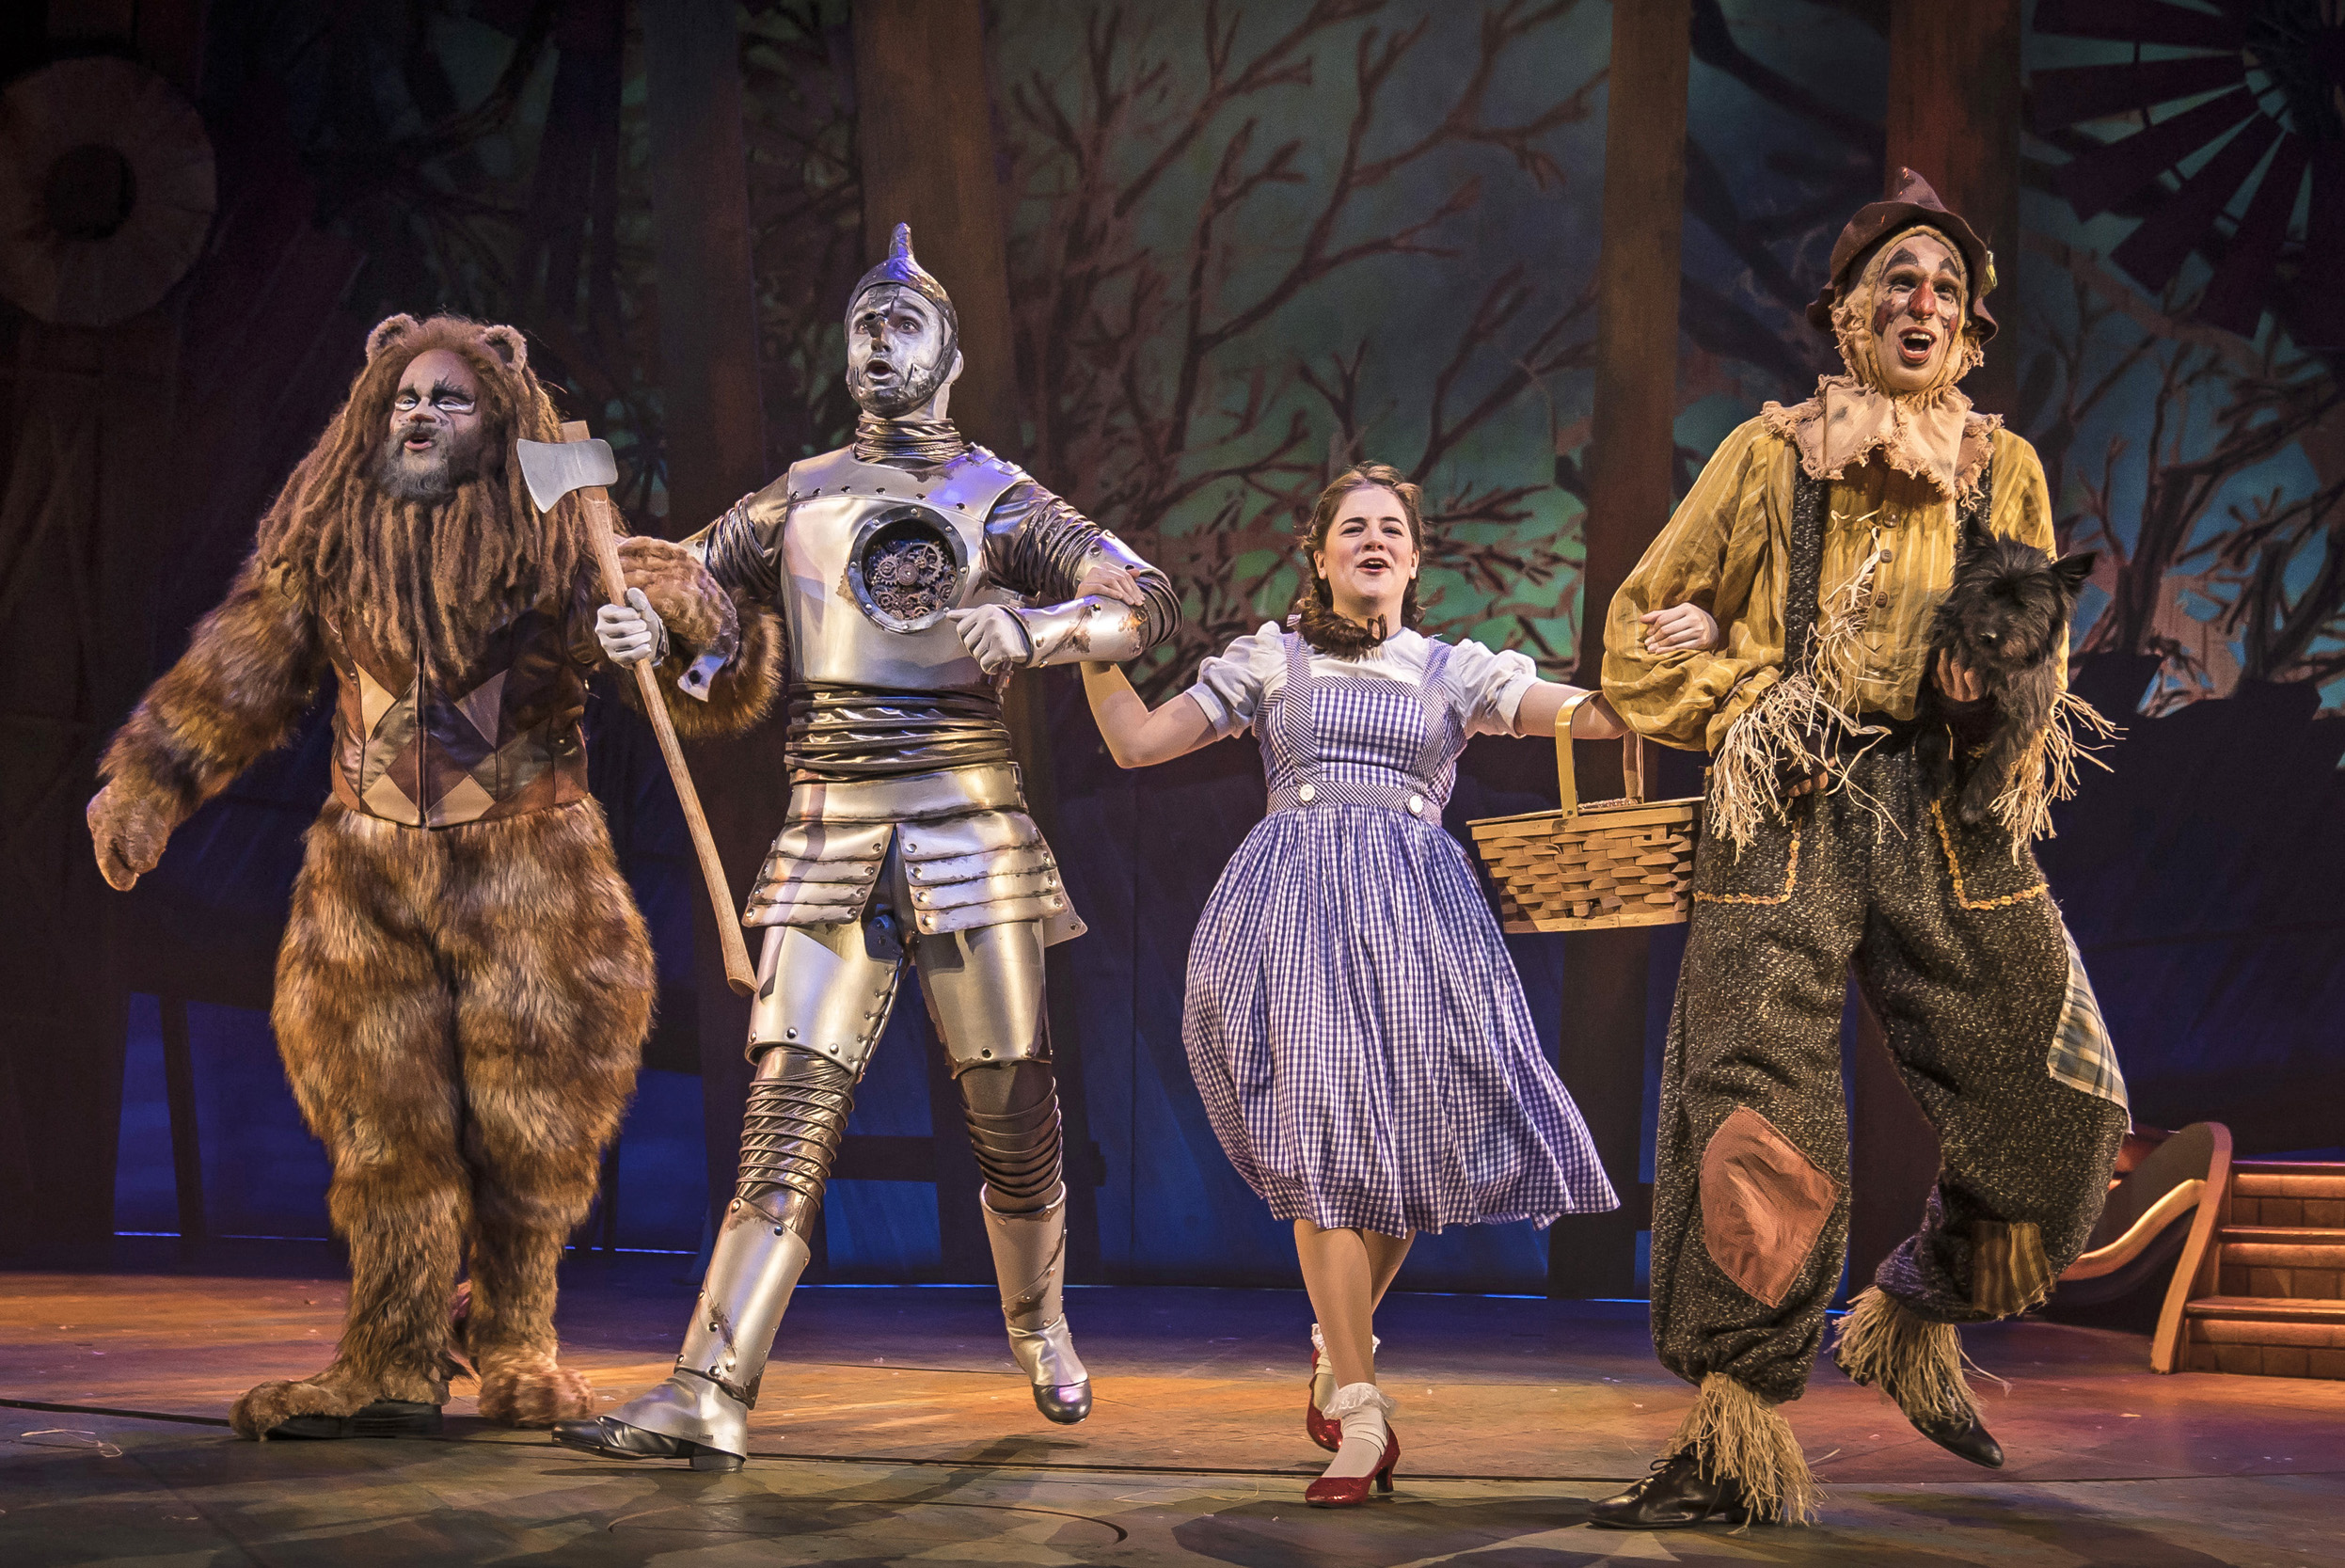 Wizard of Oz at the Paramount Theater in Aurora